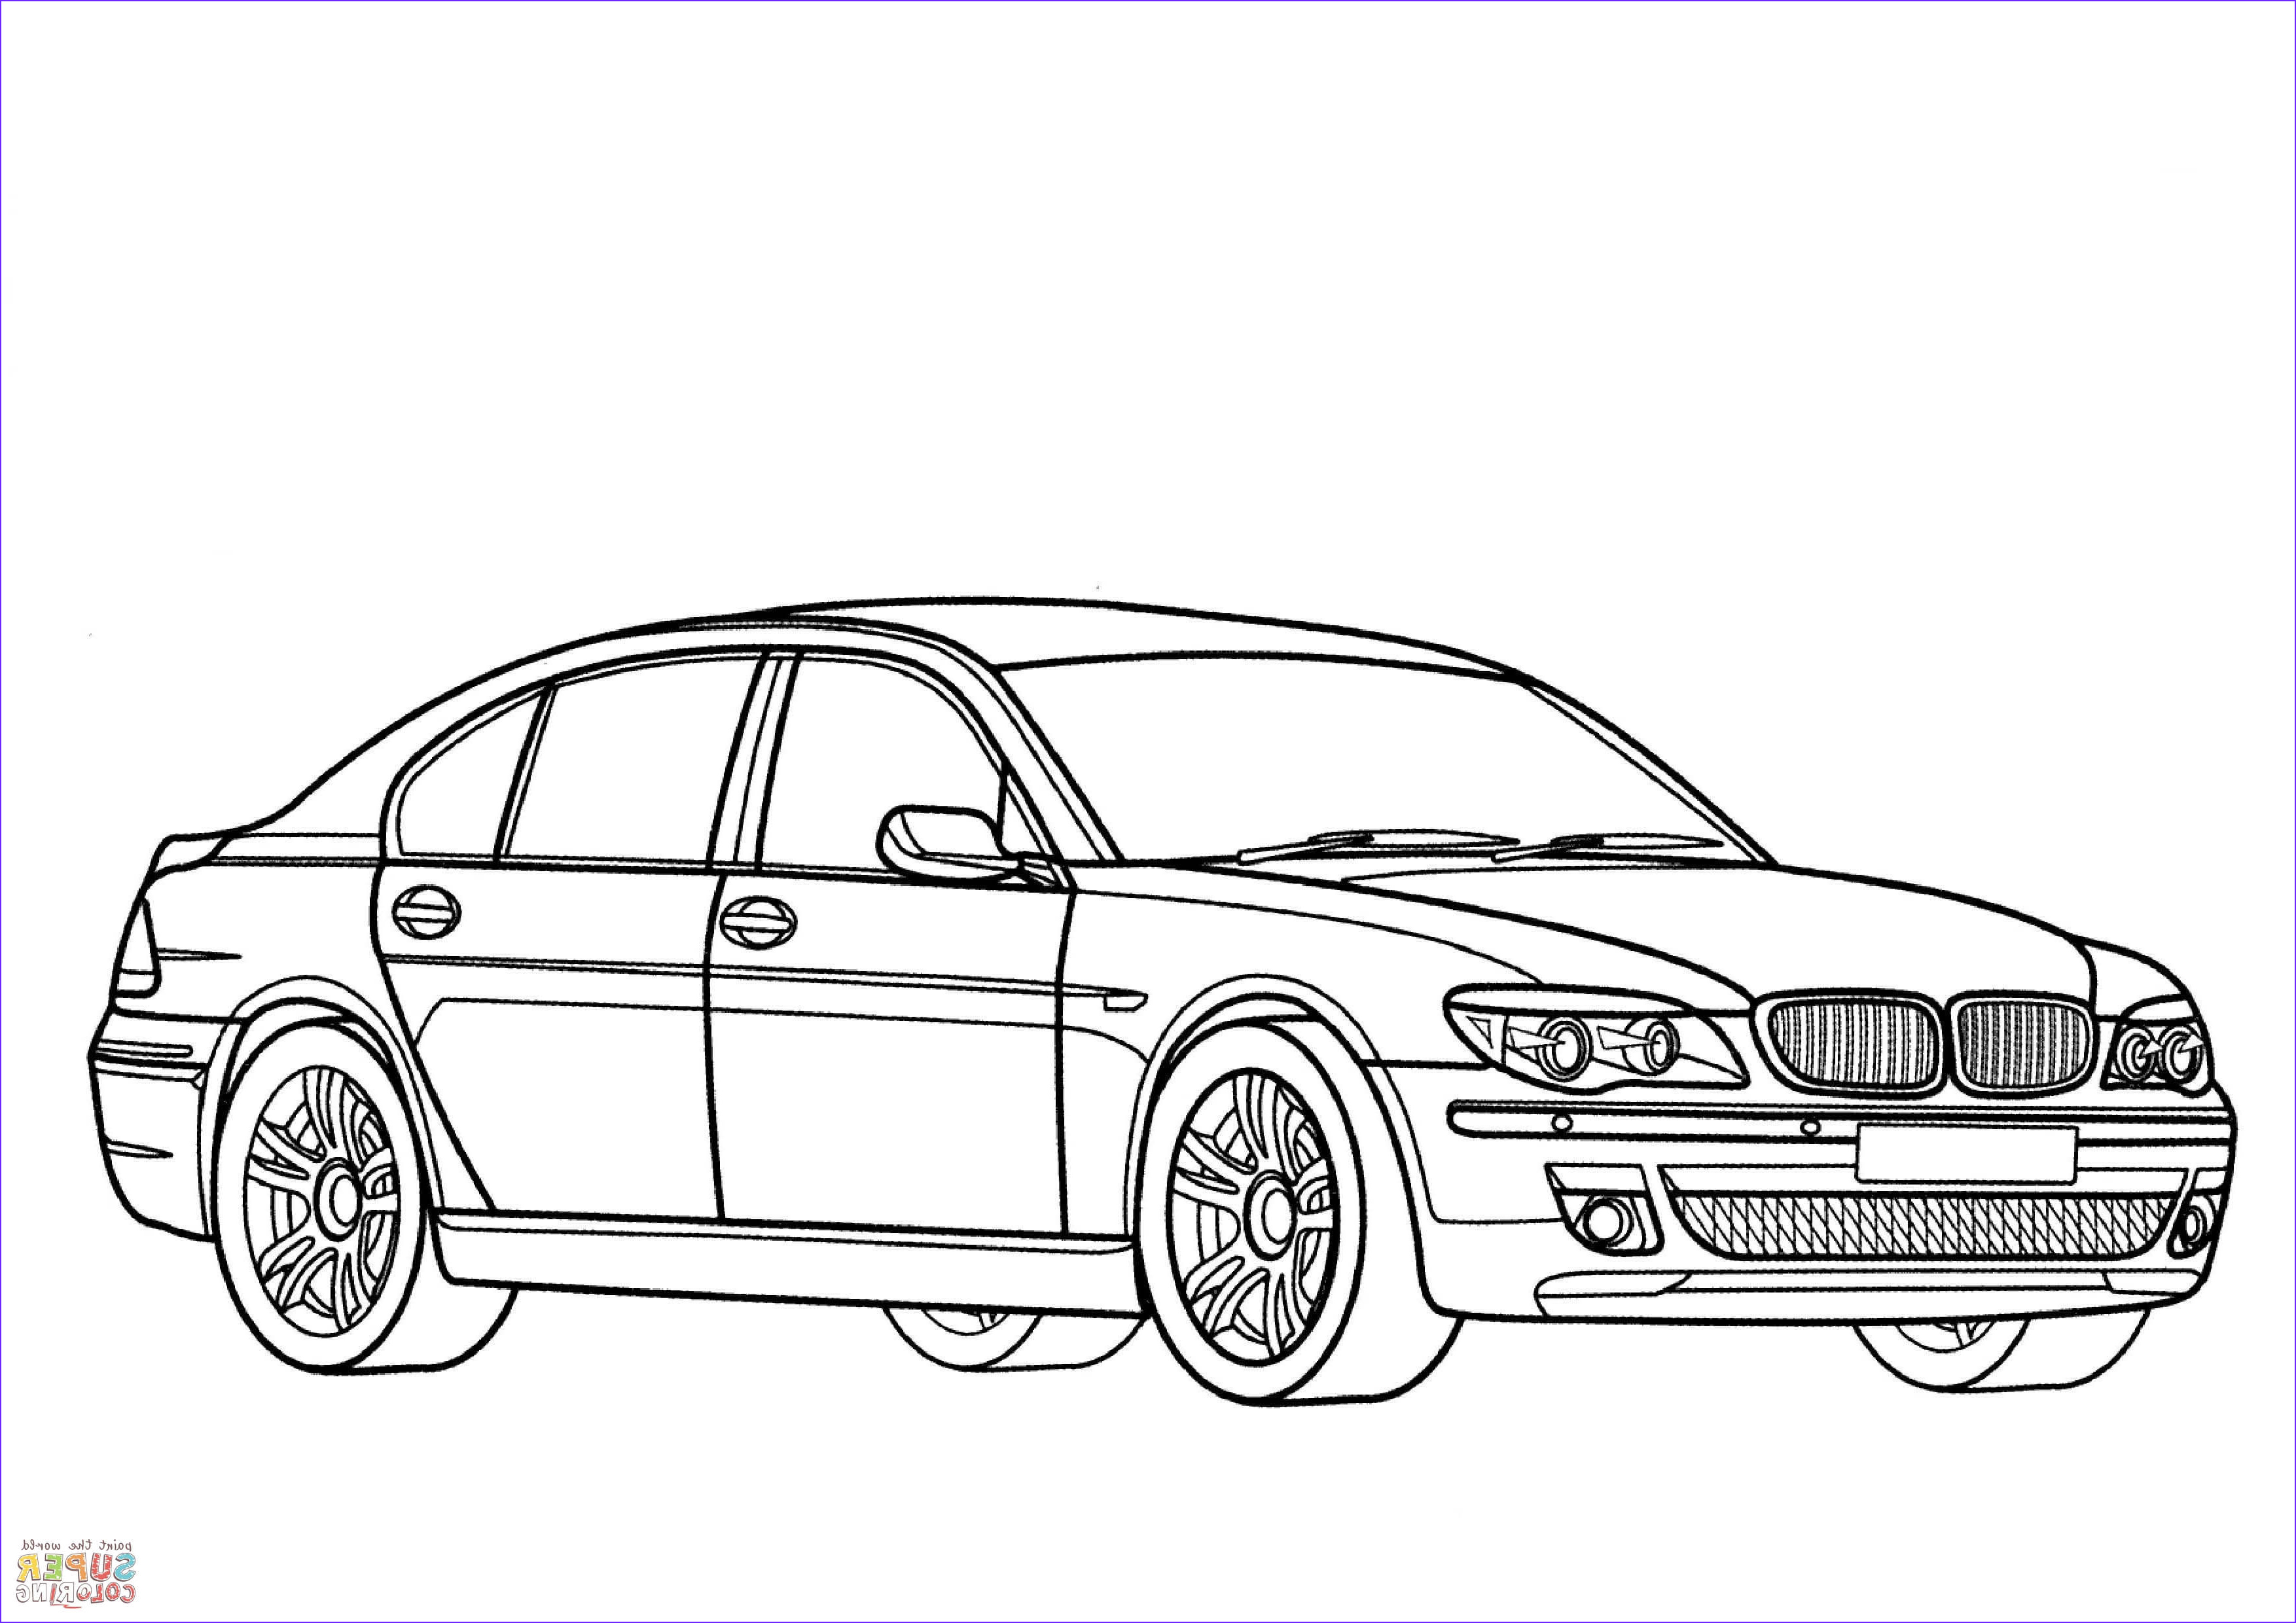 BMW 7 Series coloring page